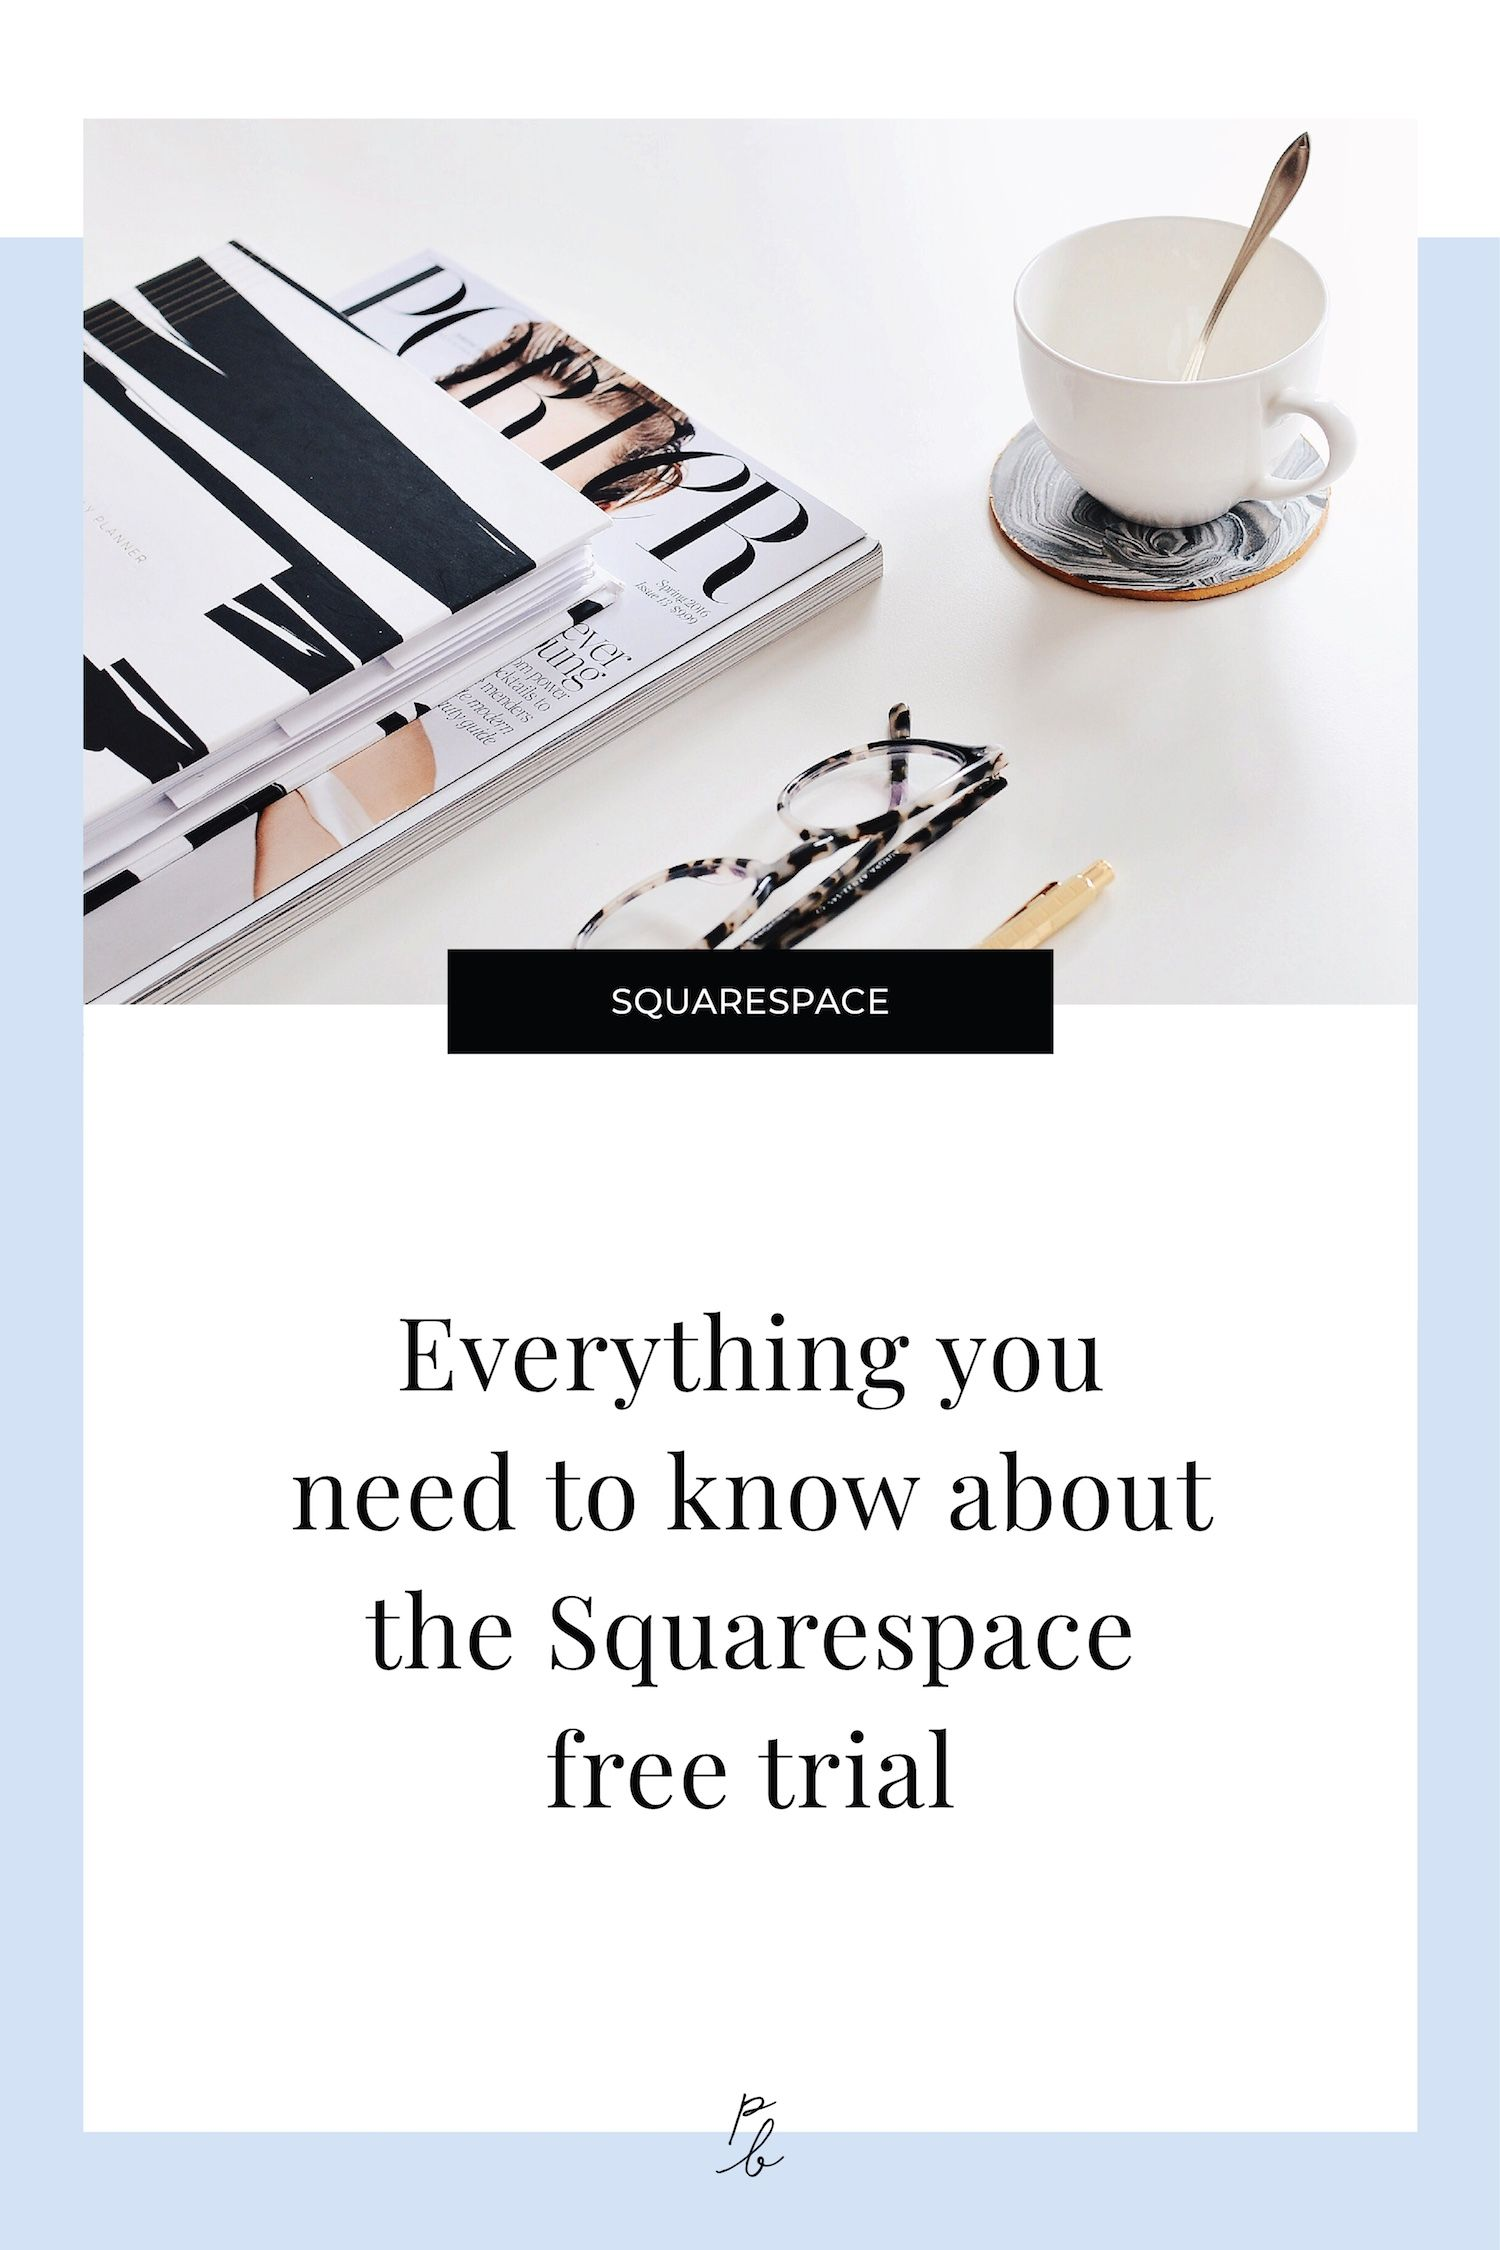 Everything you need to know about the Squarespace free trial